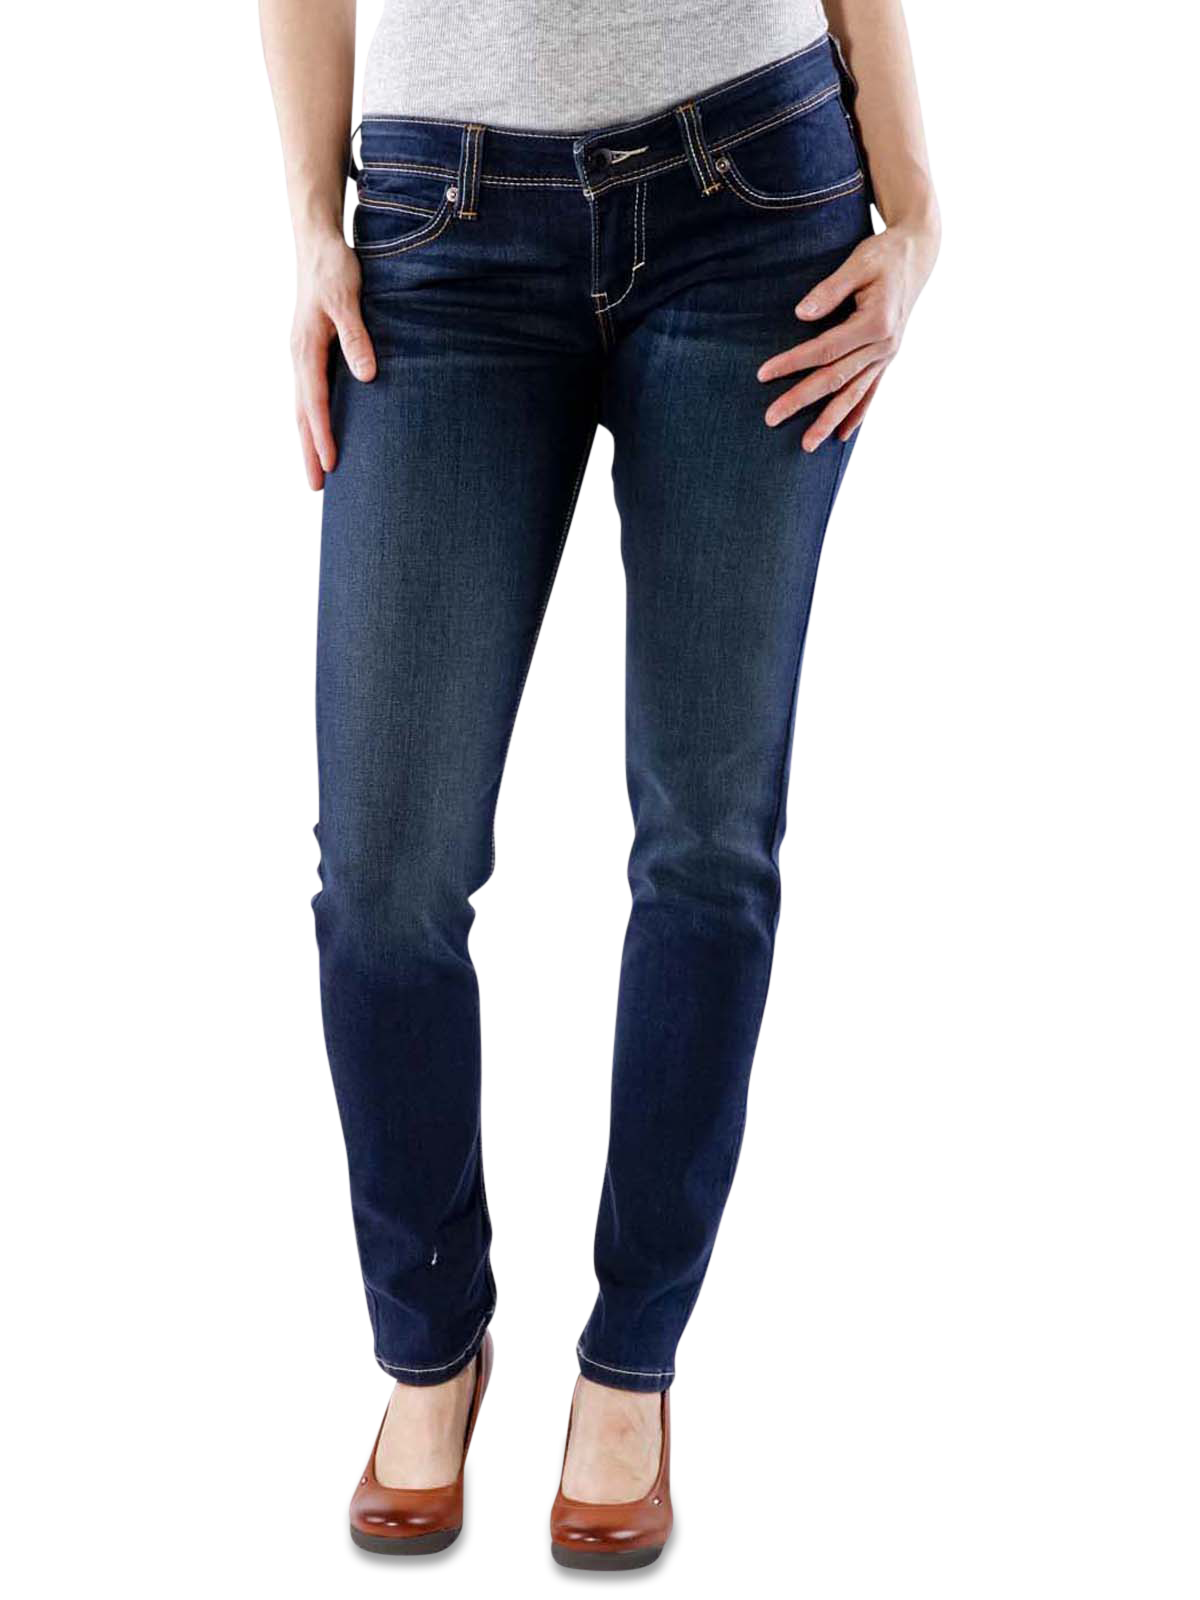 Jeans Download Png PNG Image